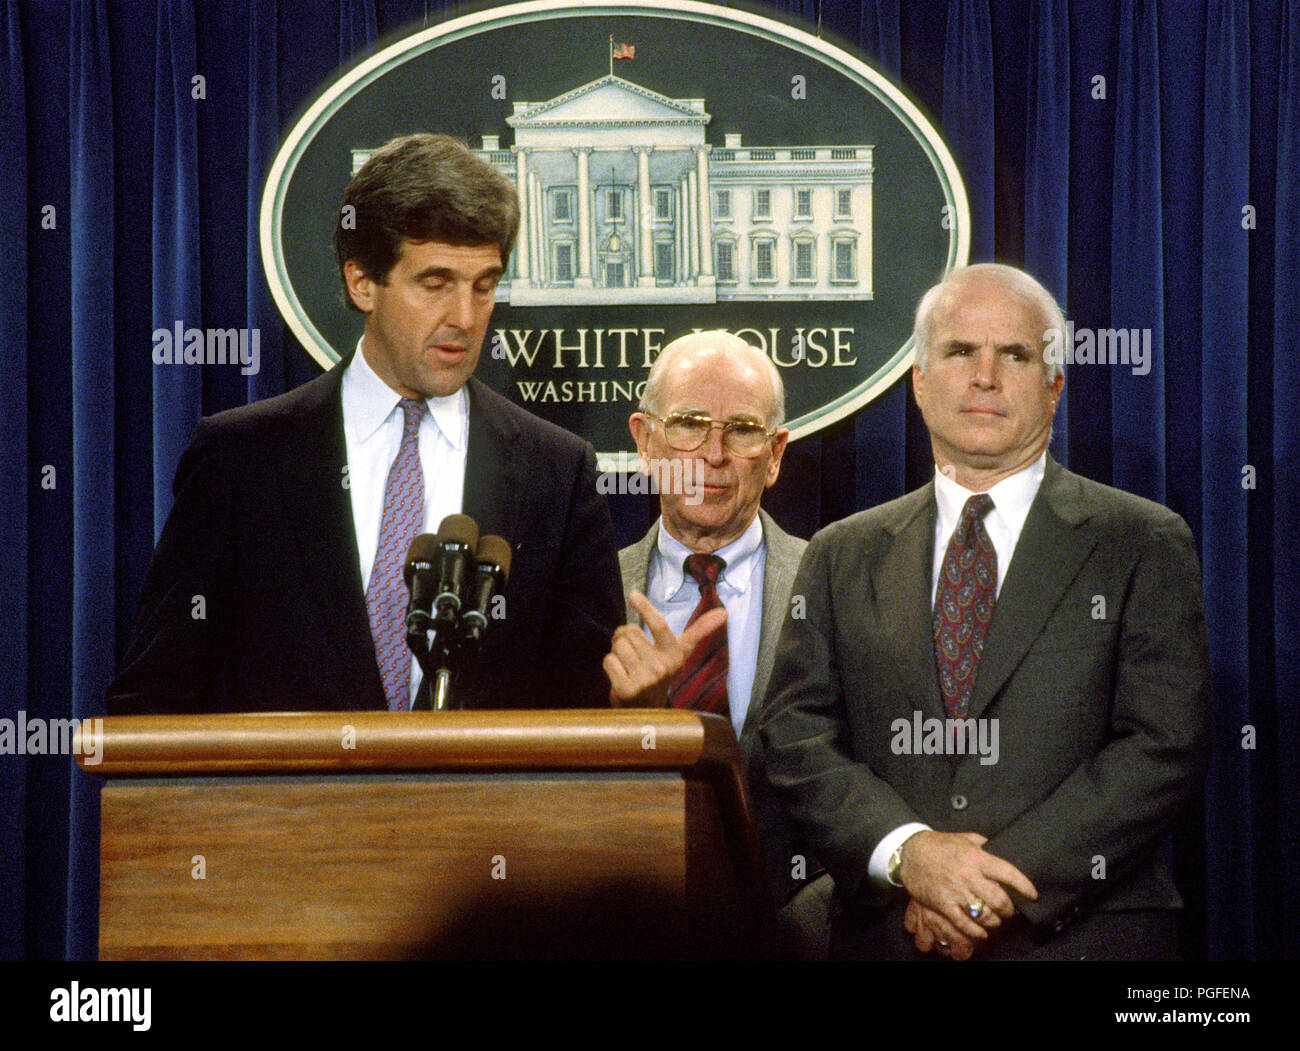 Washington, DC - (FILE) -- United States Senator John F. Kerry (Democrat of Massachusetts), left, retired United States Army General John Vessey, former chairman of the Joint Chiefs of Staff, and Special Emissary to Vietnam for P.O.W./M.I.A. affairs, center, and United States Senator John McCain (Republican of Arizona), right, meet reporters in the White House Press Briefing Room after United States President George H.W. Bush announced the Government of Vietnam had agreed to make available all information including photographs, artifacts, and military documents on United States prisoners of wa - Stock Image